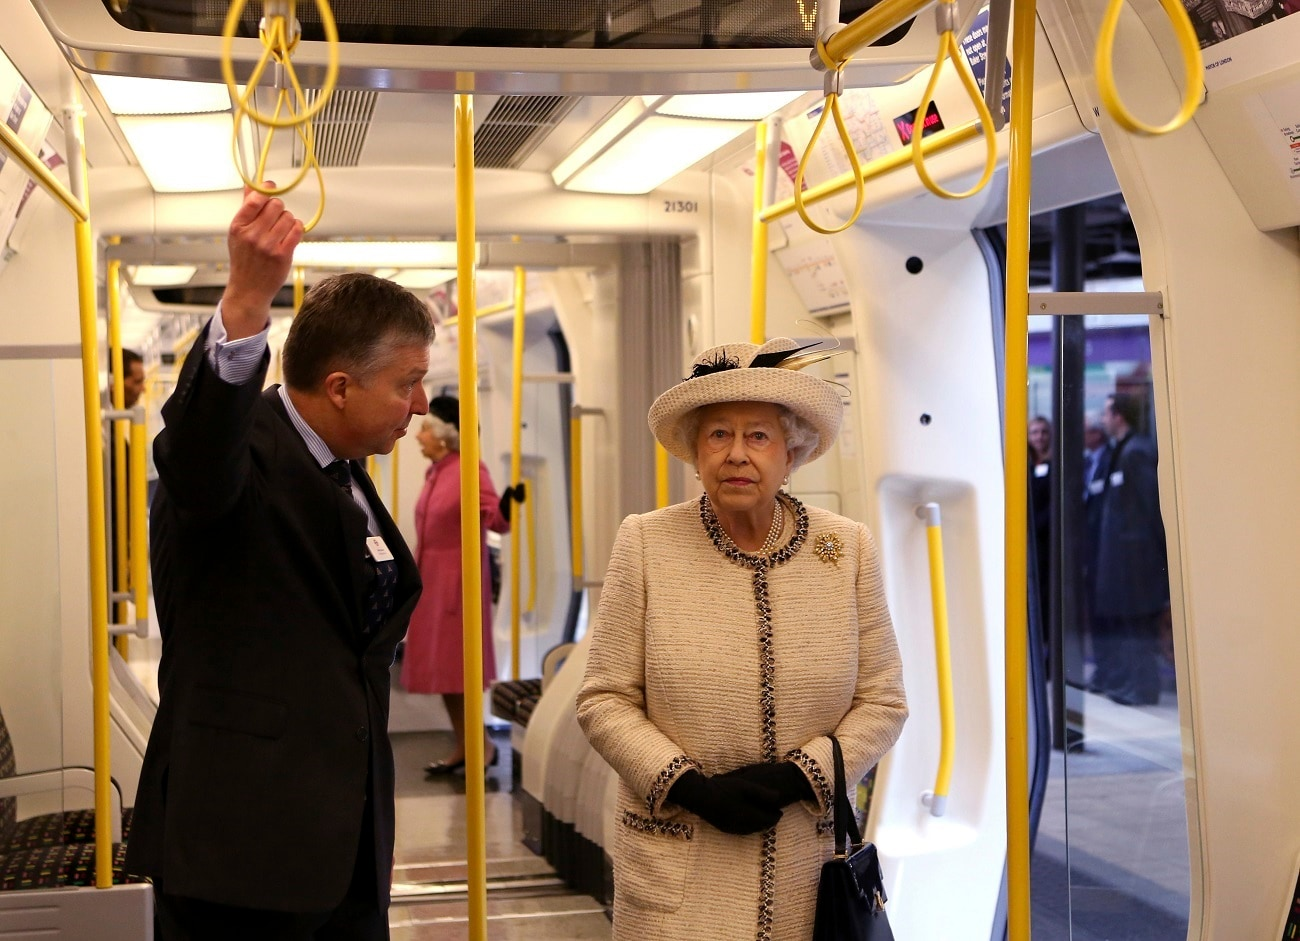 Queen Elizabeth II is given a tour of the carriage of a parked train at the Baker Street underground station in London, for a visit to mark the 150th anniversary of the London Underground. (AP Photo/Chris Radburn, Pool)